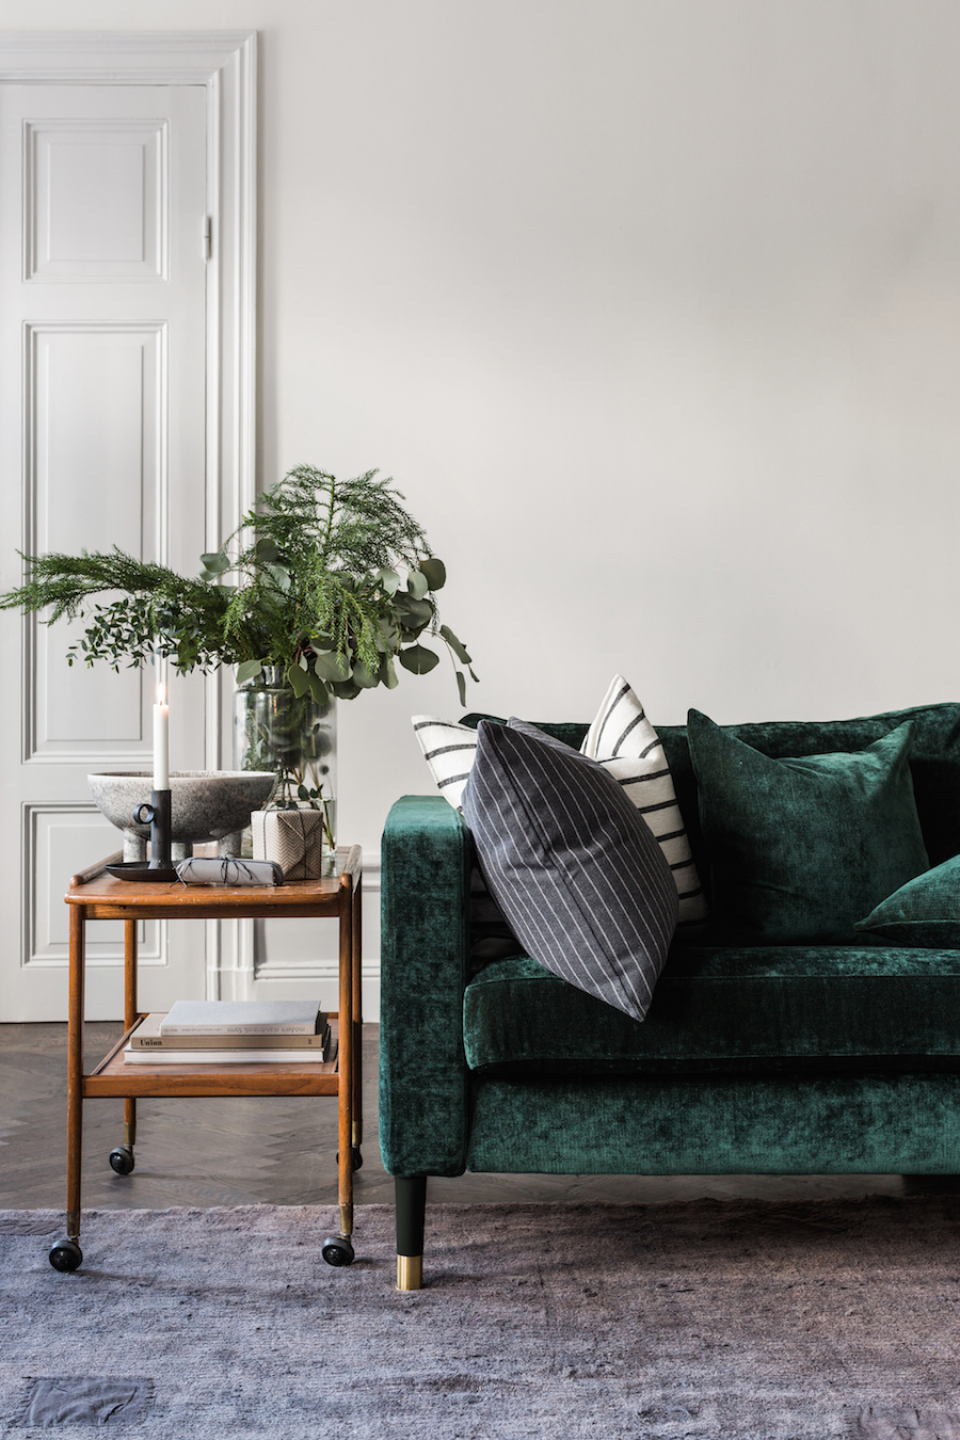 Las tendencias de decoración que arrasan en 2019